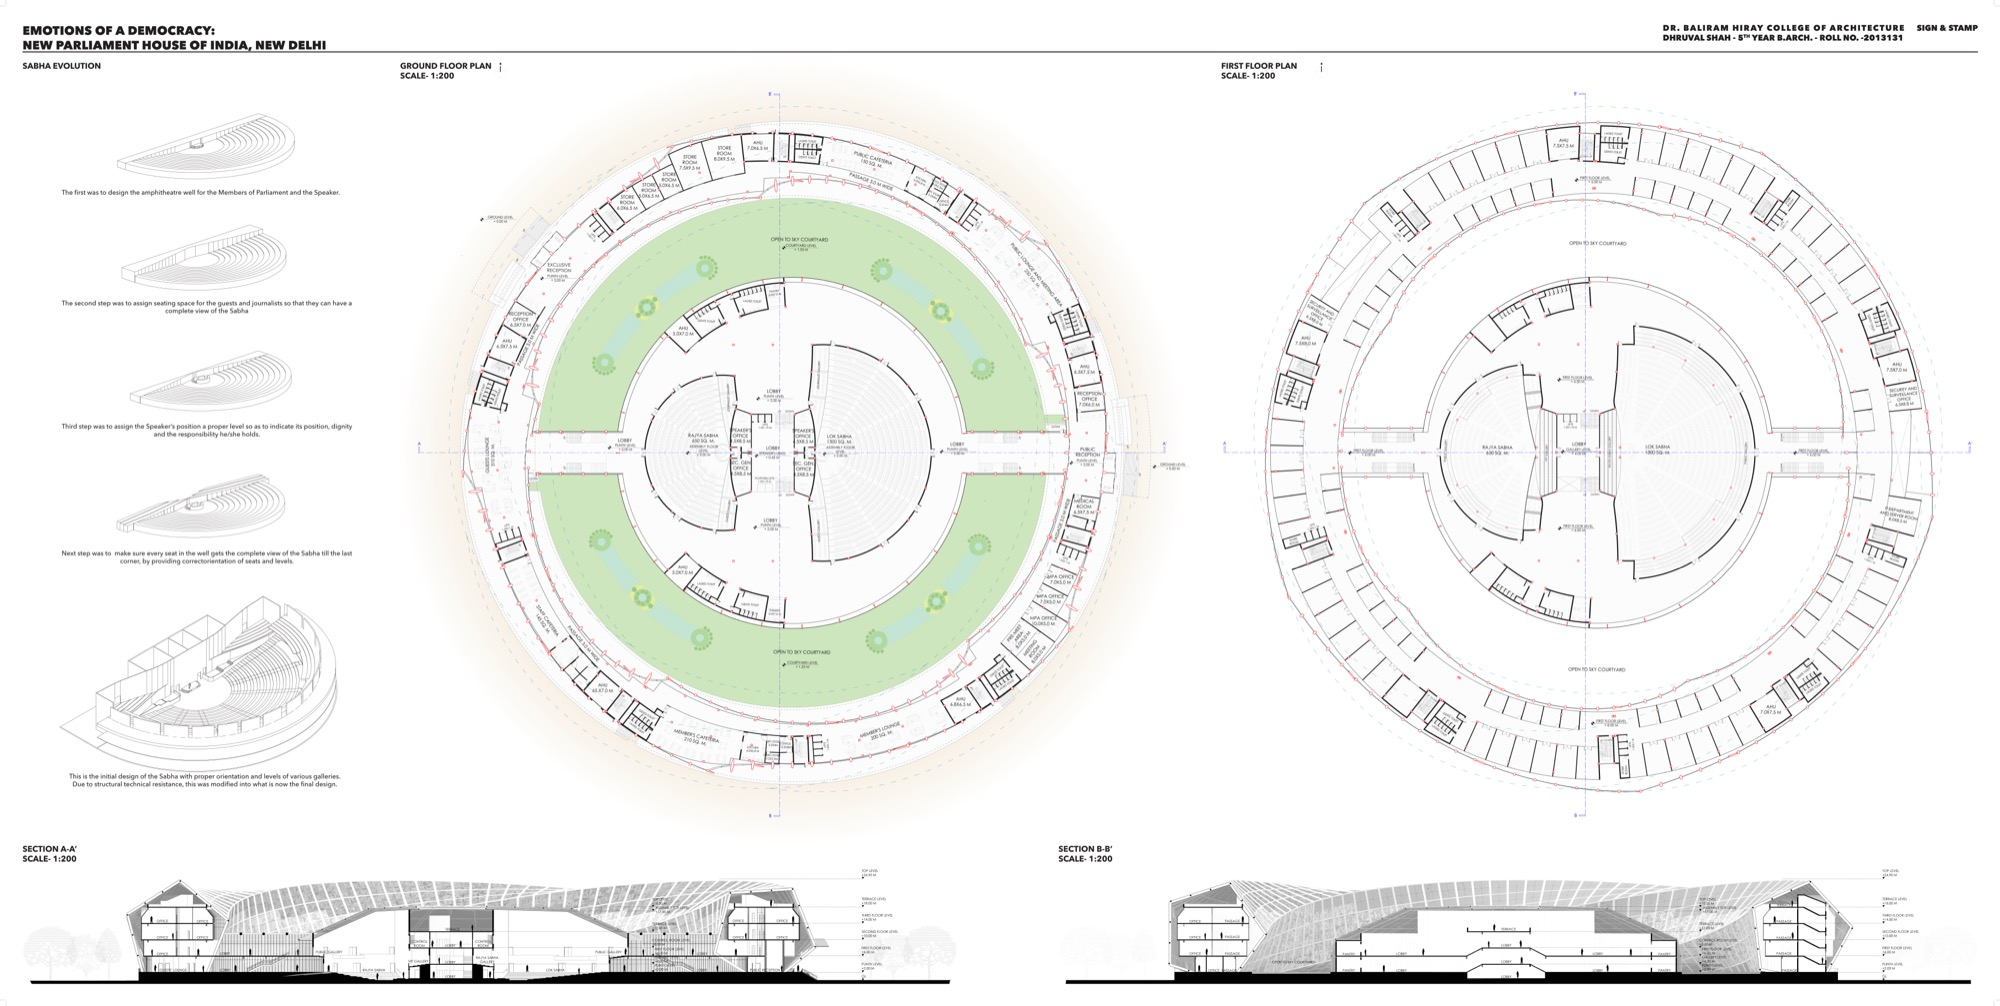 B.Arch Thesis: Emotions of a Democracy: New Parliament House of India, New Delhi Dhruval Shah 18